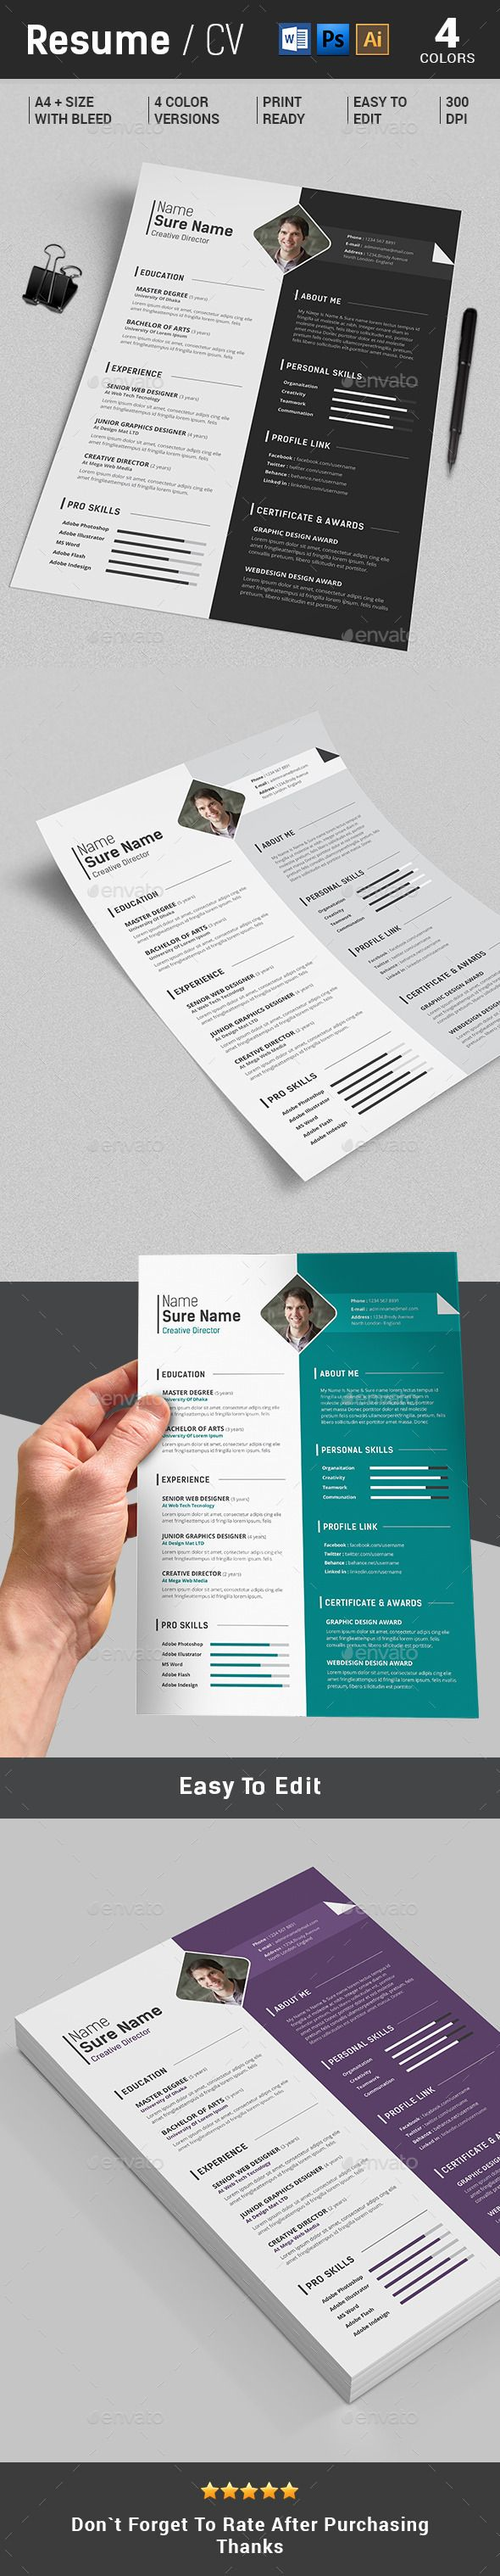 Resume / CV Template #design Download: http://graphicriver.net/item/resumecv-/12869073?ref=ksioks